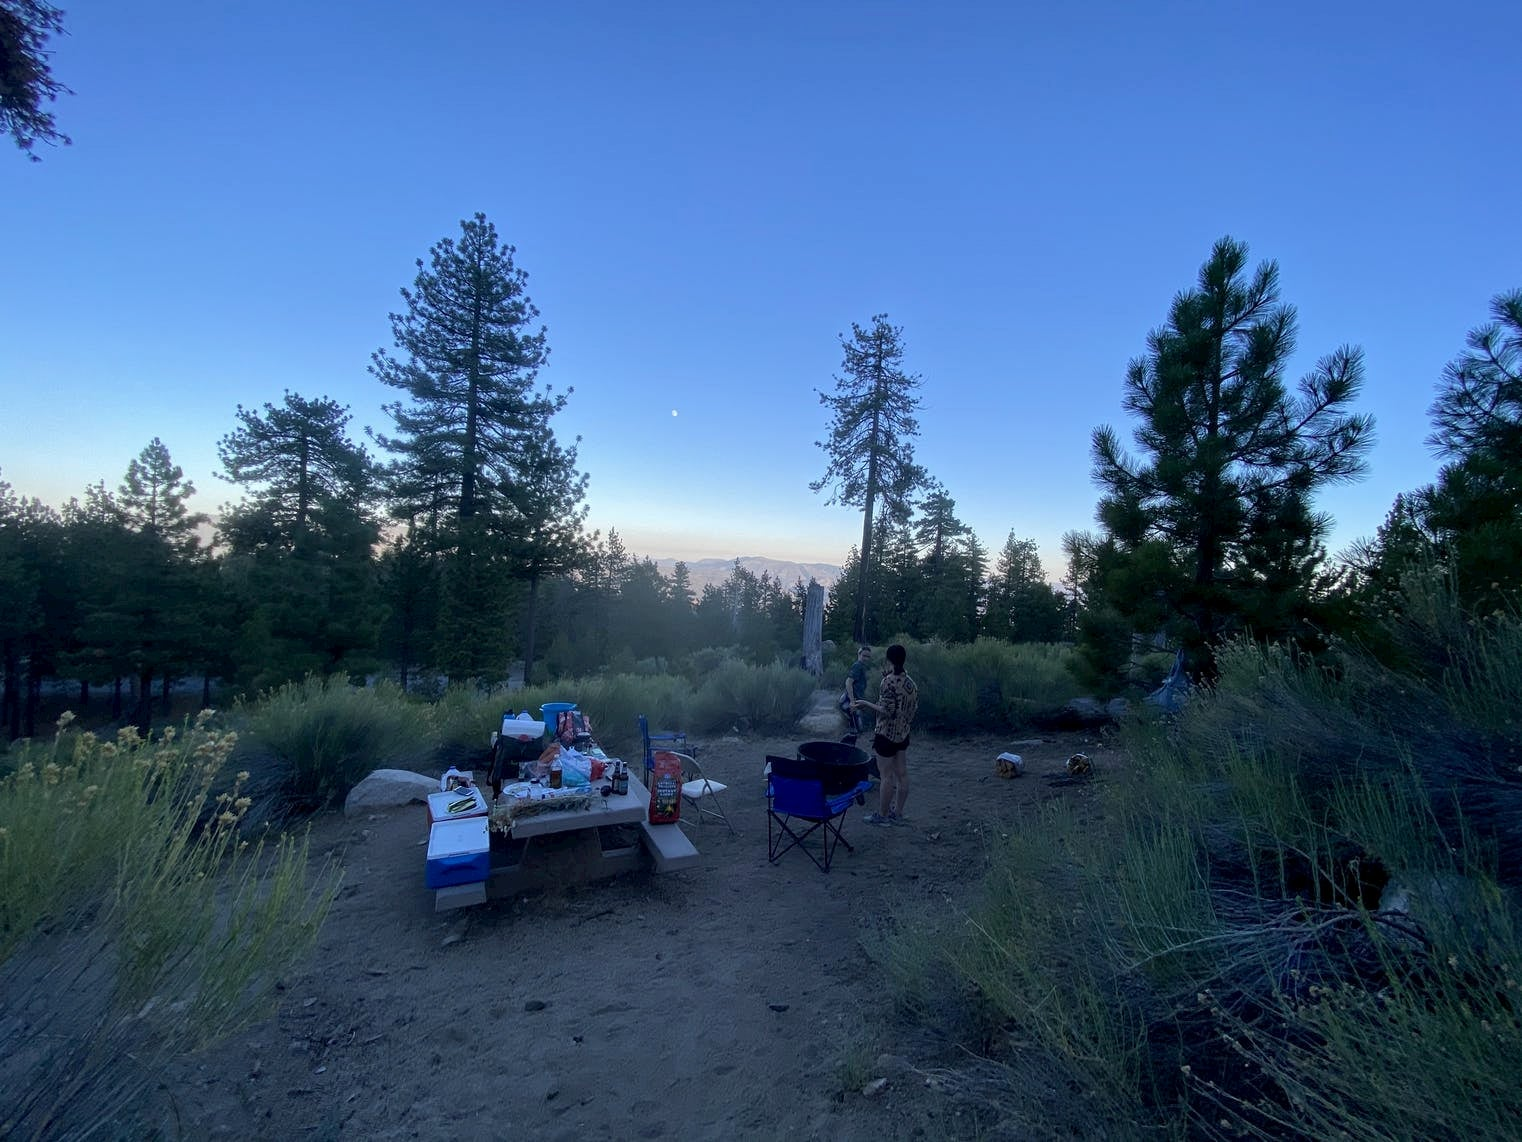 Campsite with picnic table at dusk in the mountains of California.